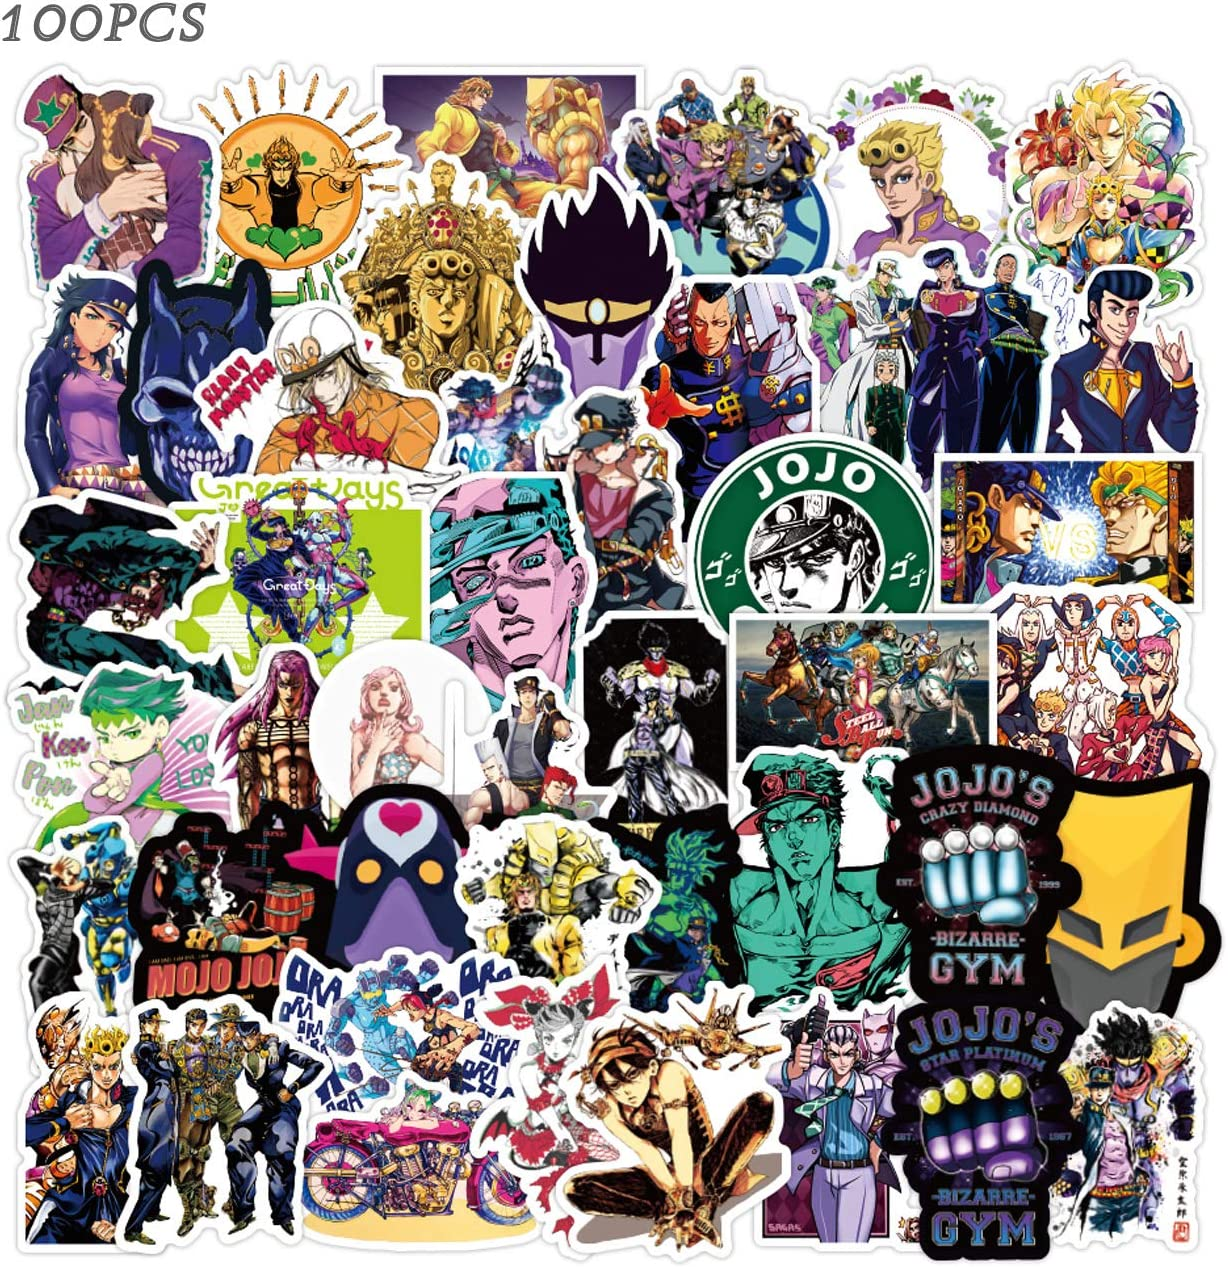 Jojos Bizarre Adventure Stickers 100PCS Cool Anime Stickers Vinyl Waterproof Stickers for Kids Teens Adults Laptop Water Bottles Skateboard Guitar